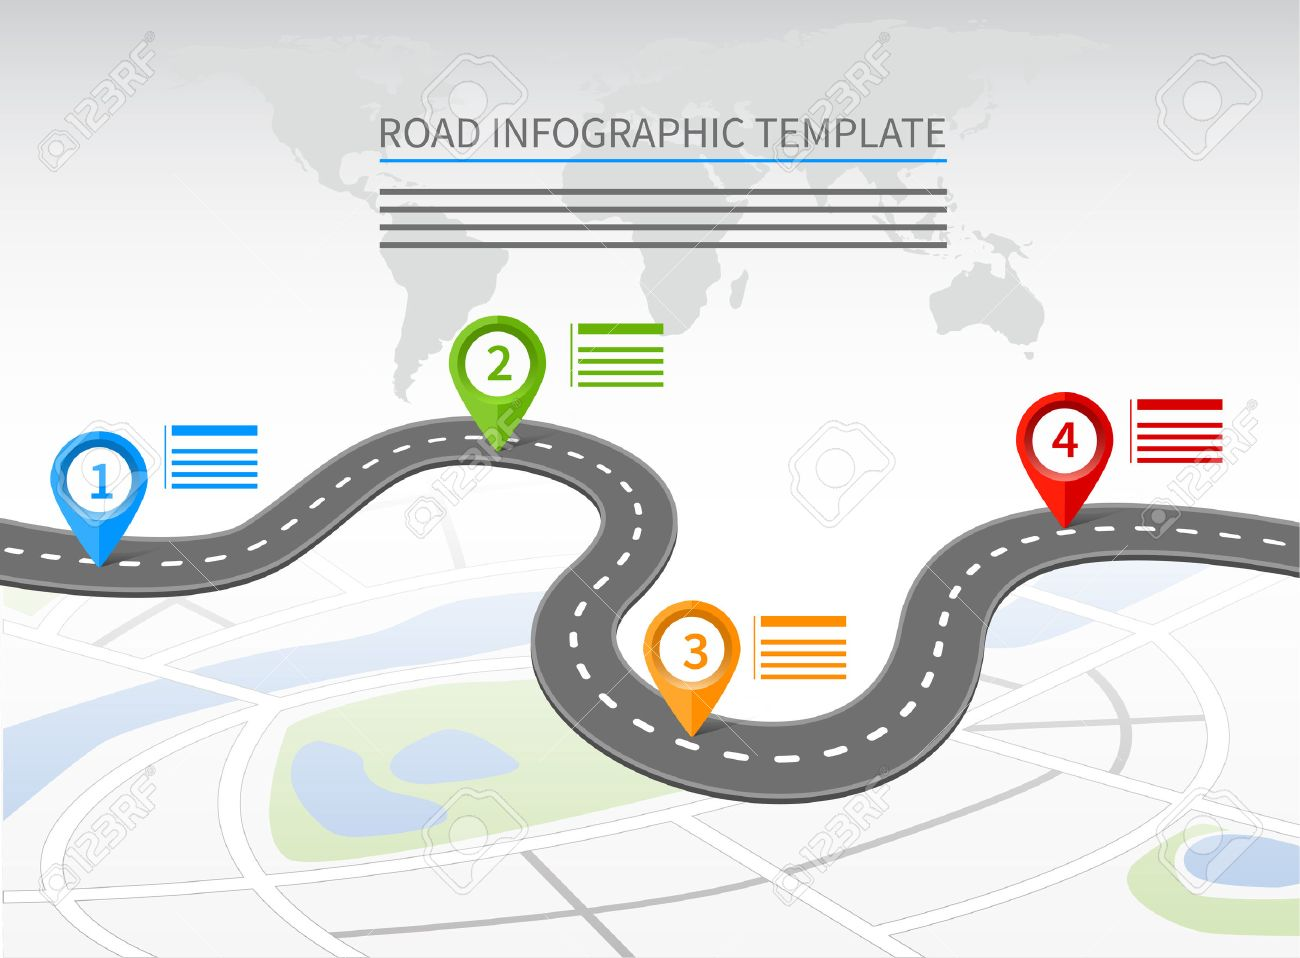 Road infographic template with a curvy road and four pointers - 59195385